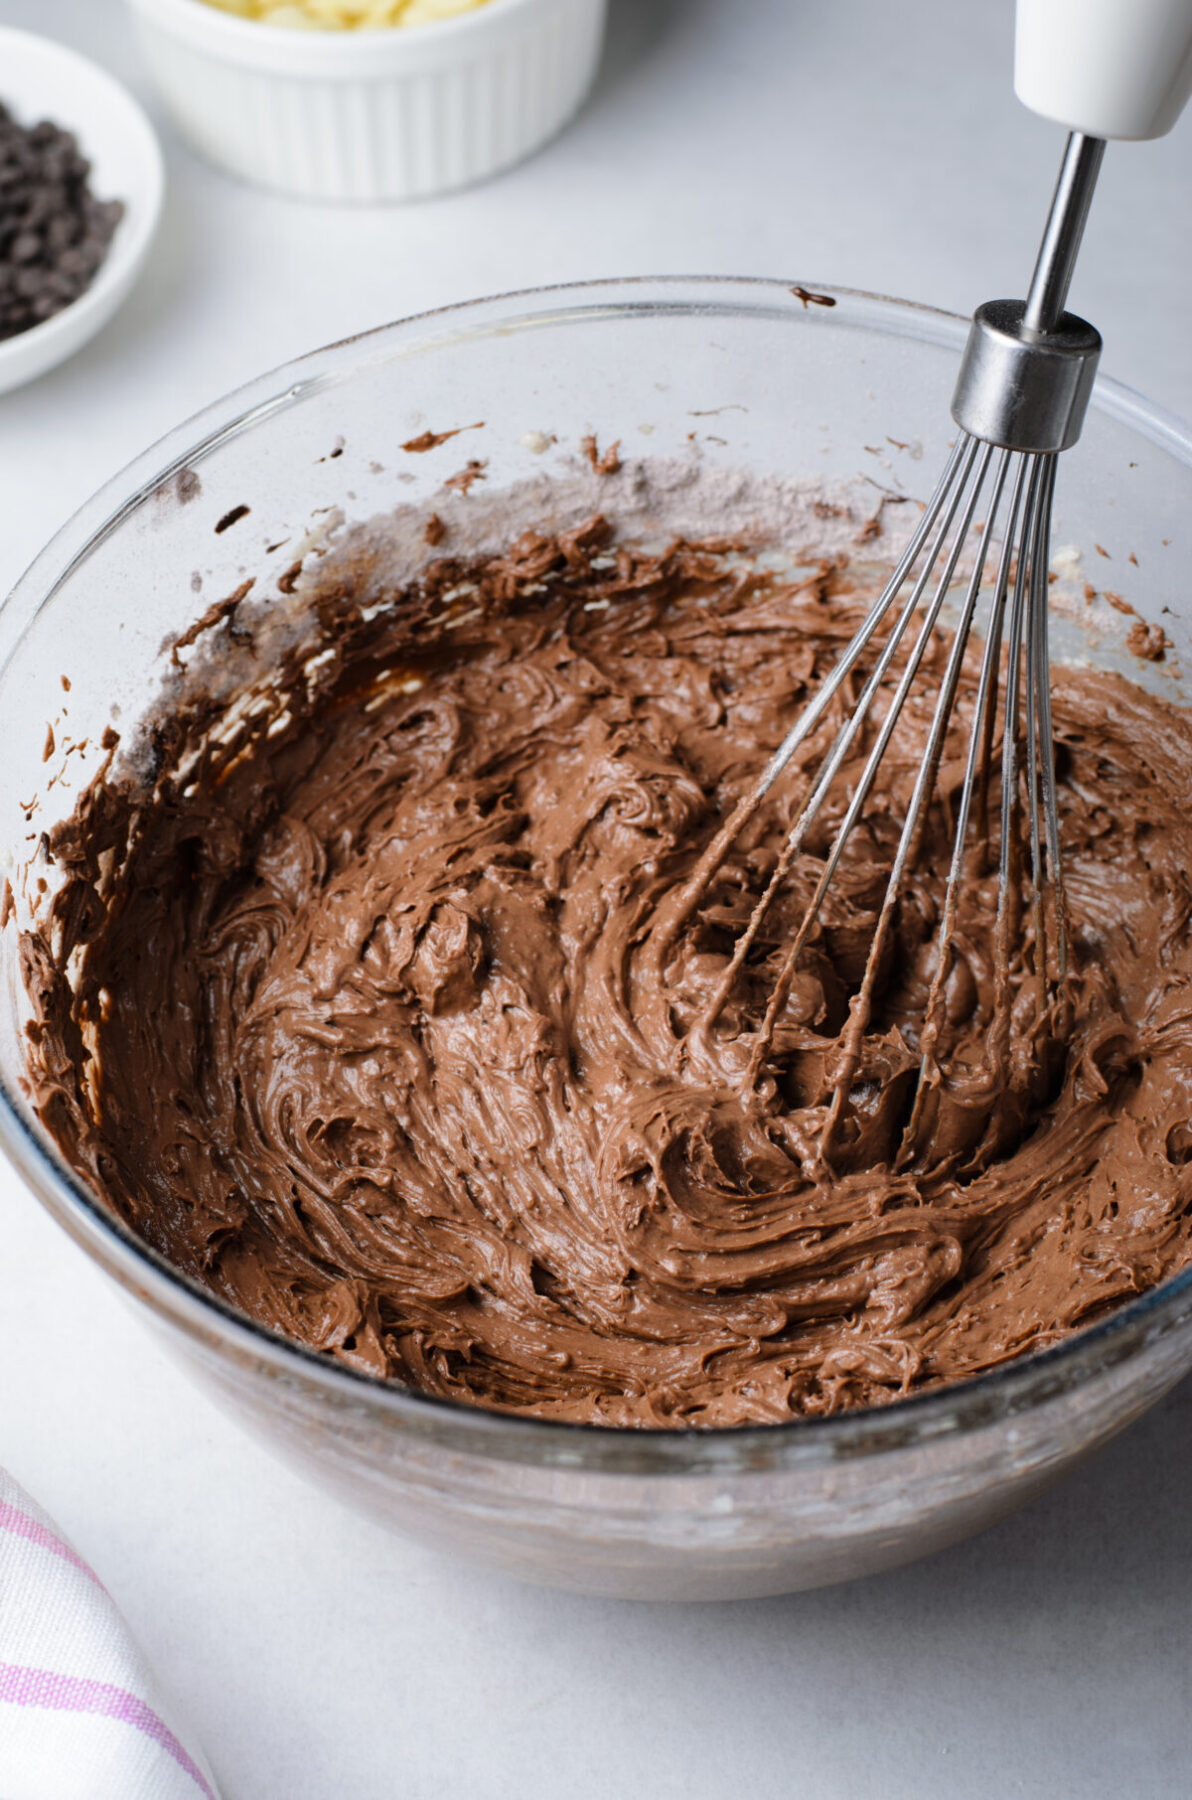 Brownies batter being mixed